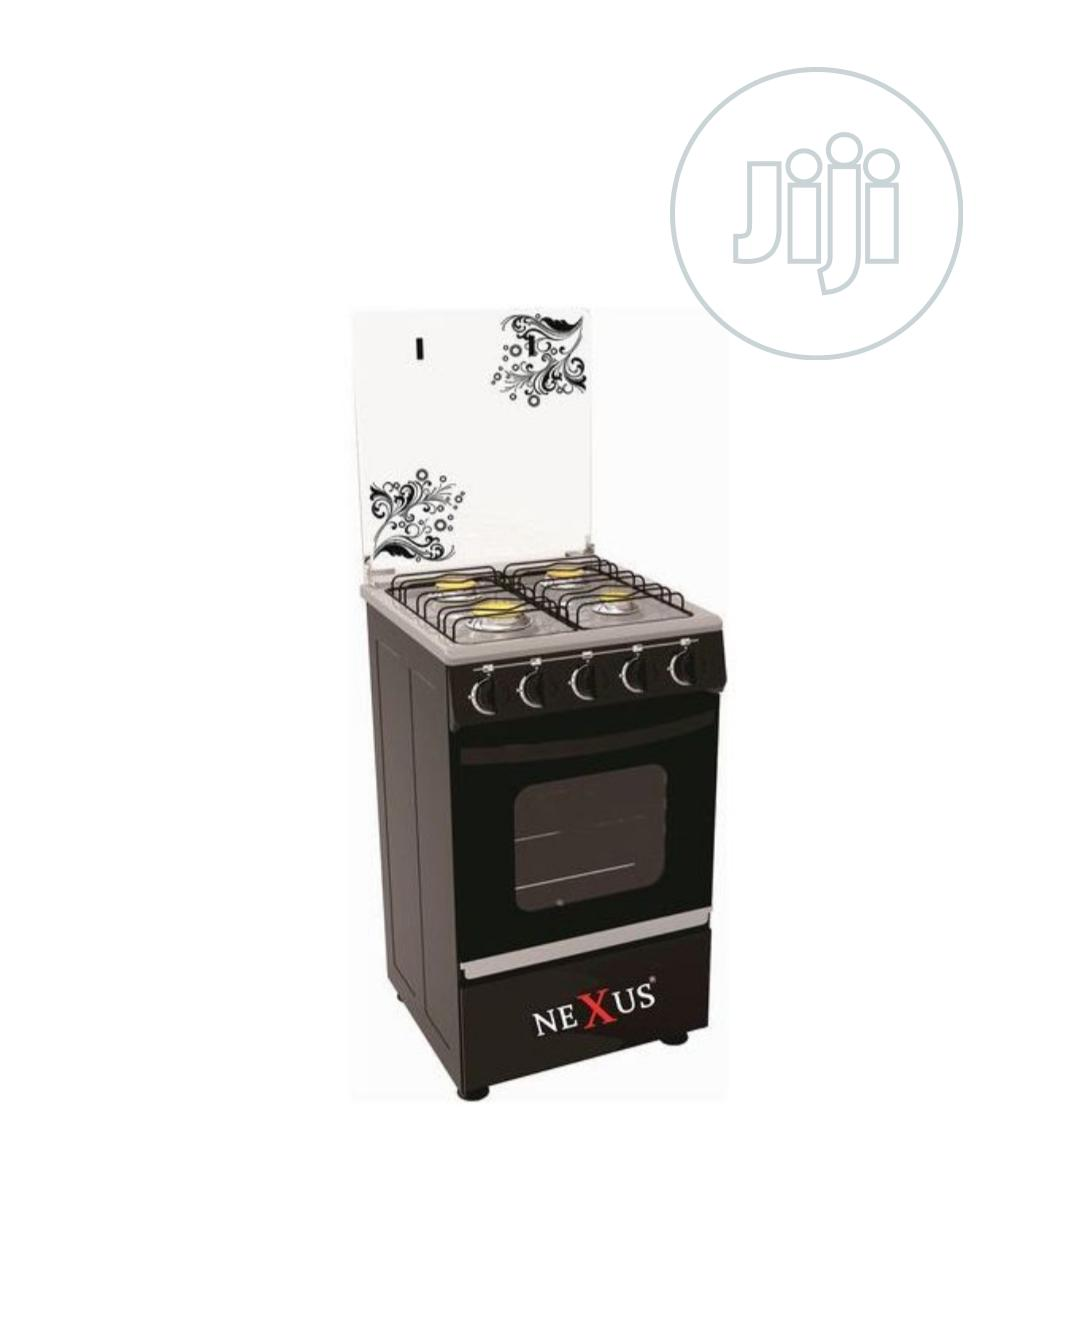 Nexus Gas Cooker 4 Burner- Nx5055b